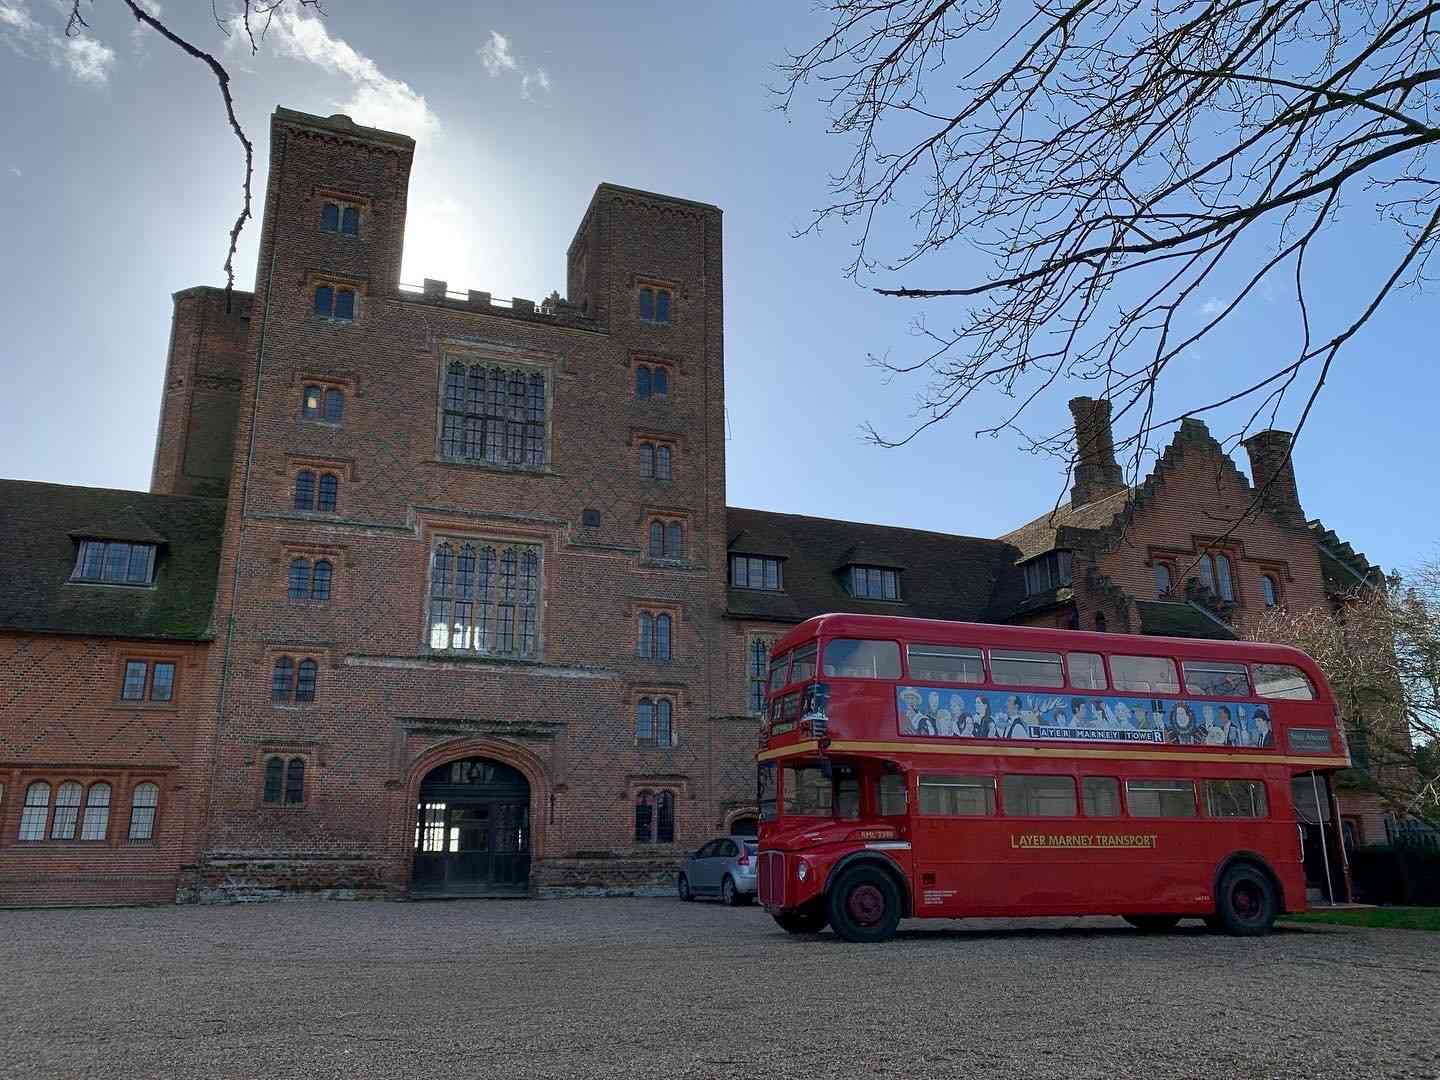 Routemaster bus, wedding transport for guests